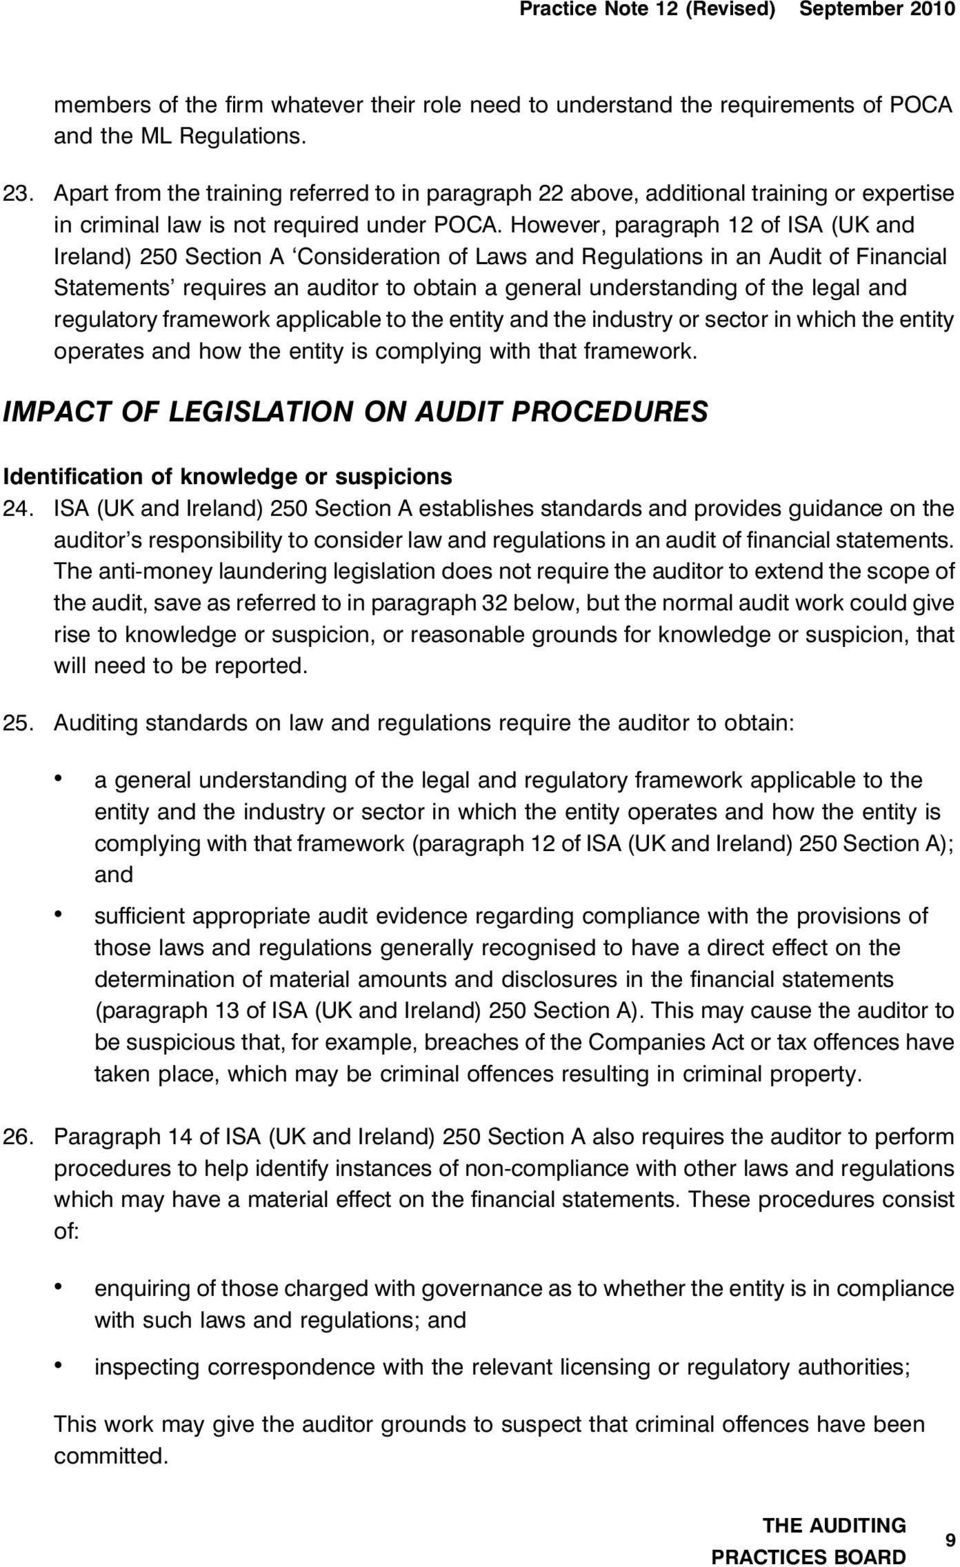 However, paragraph 12 of ISA (UK and Ireland) 250 Section A Consideration of Laws and Regulations in an Audit of Financial Statements requires an auditor to obtain a general understanding of the